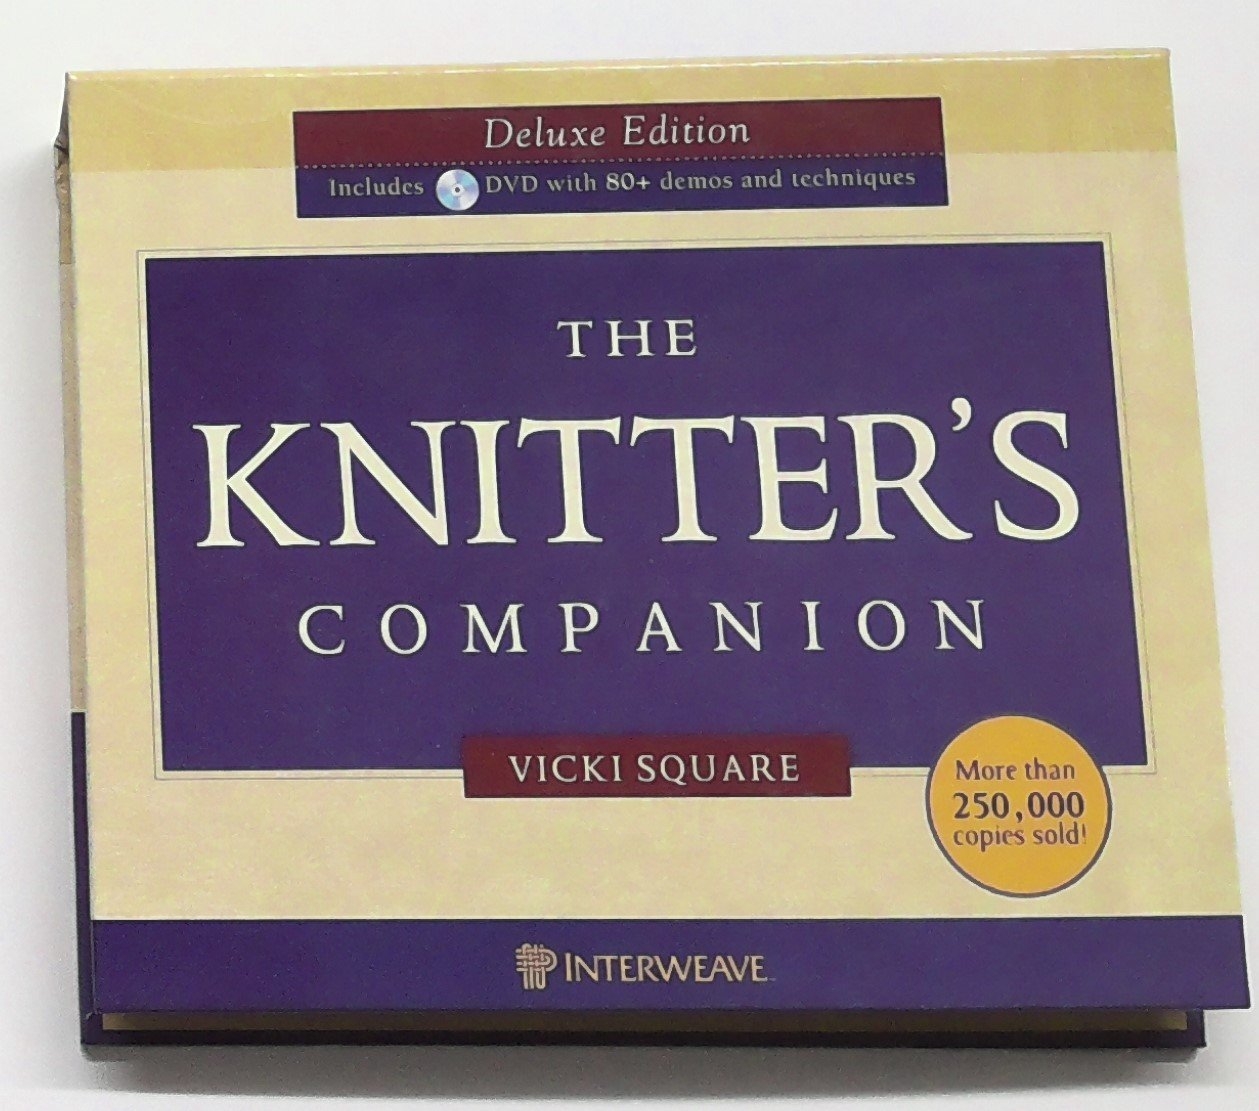 The Knitter's Companion Deluxe Edition